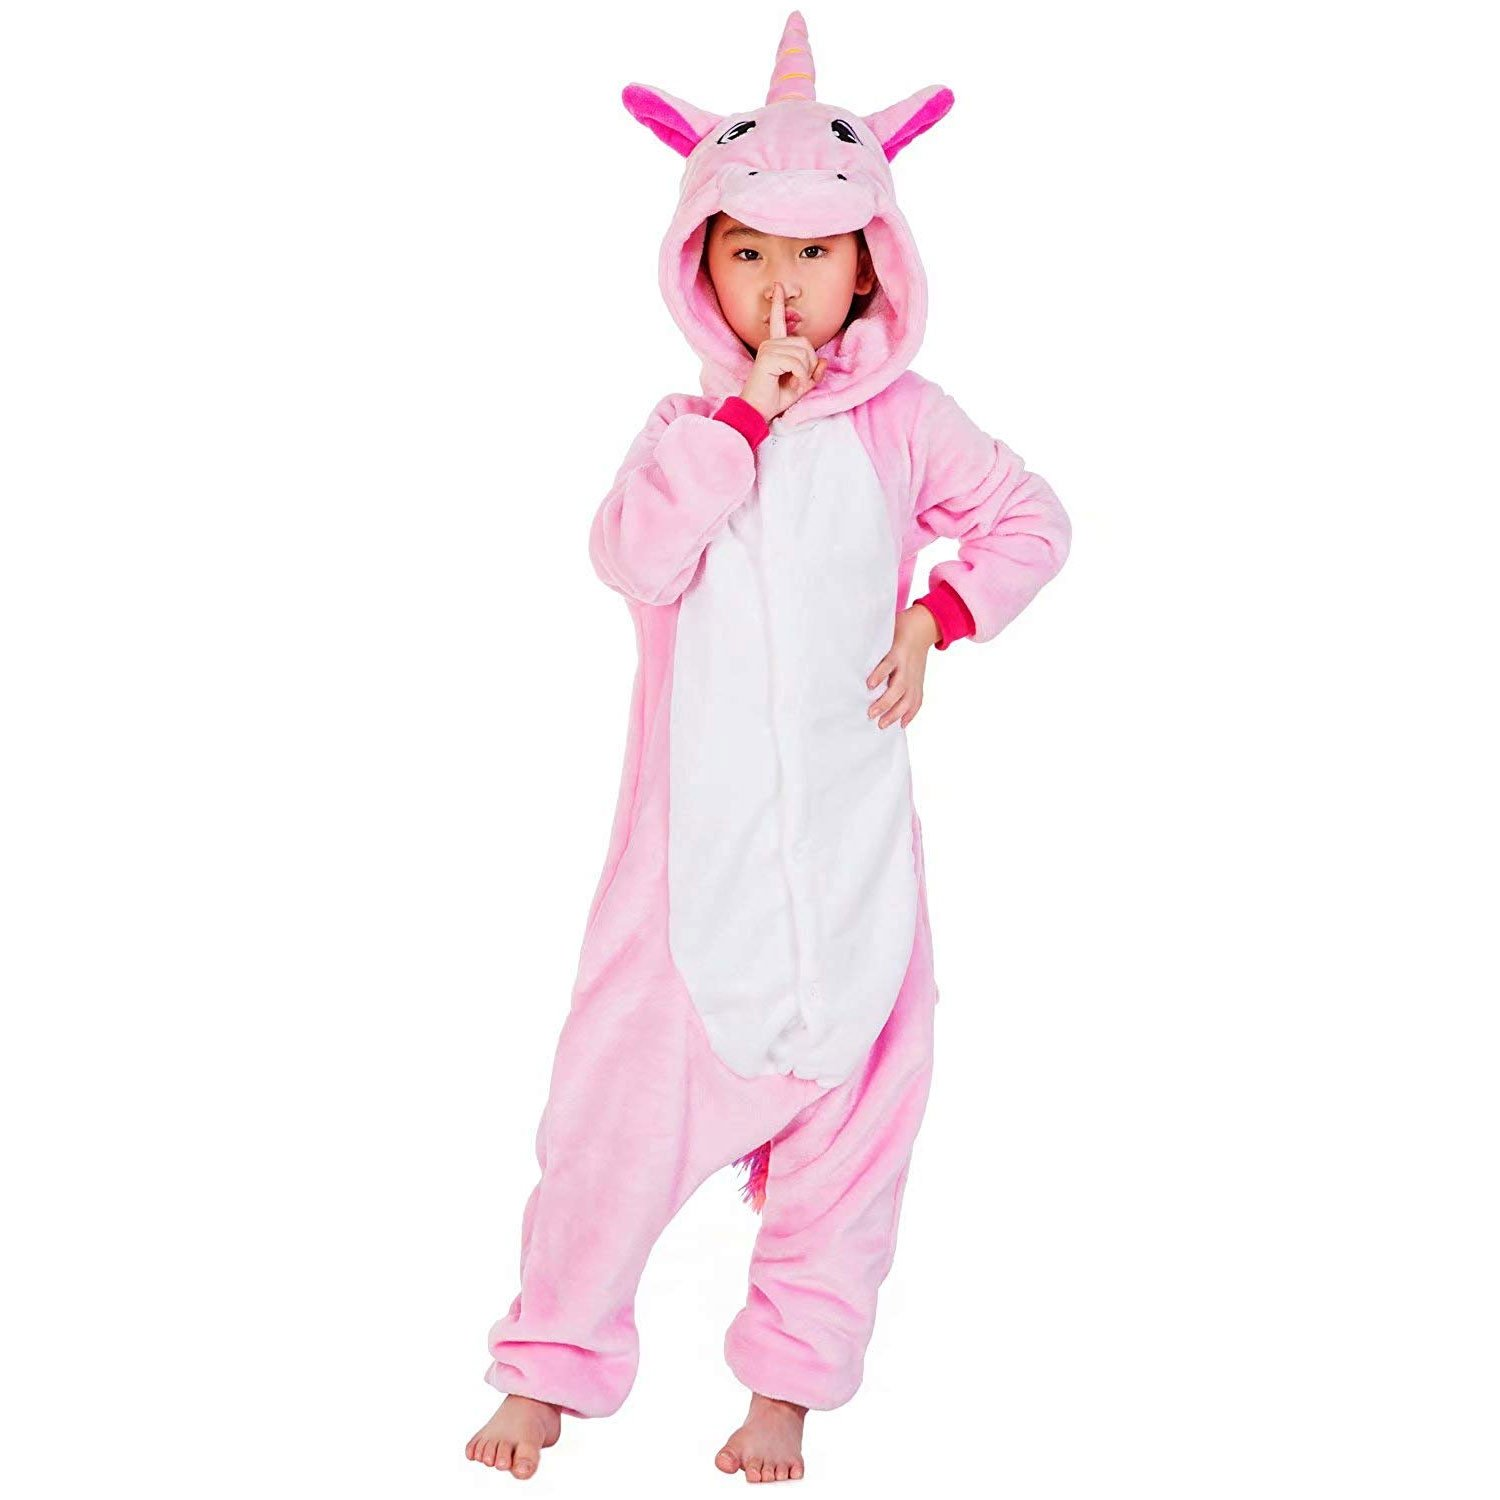 Pink Unicorn Animal Onesies Pajamas for Kids  54a8e9ed8f99